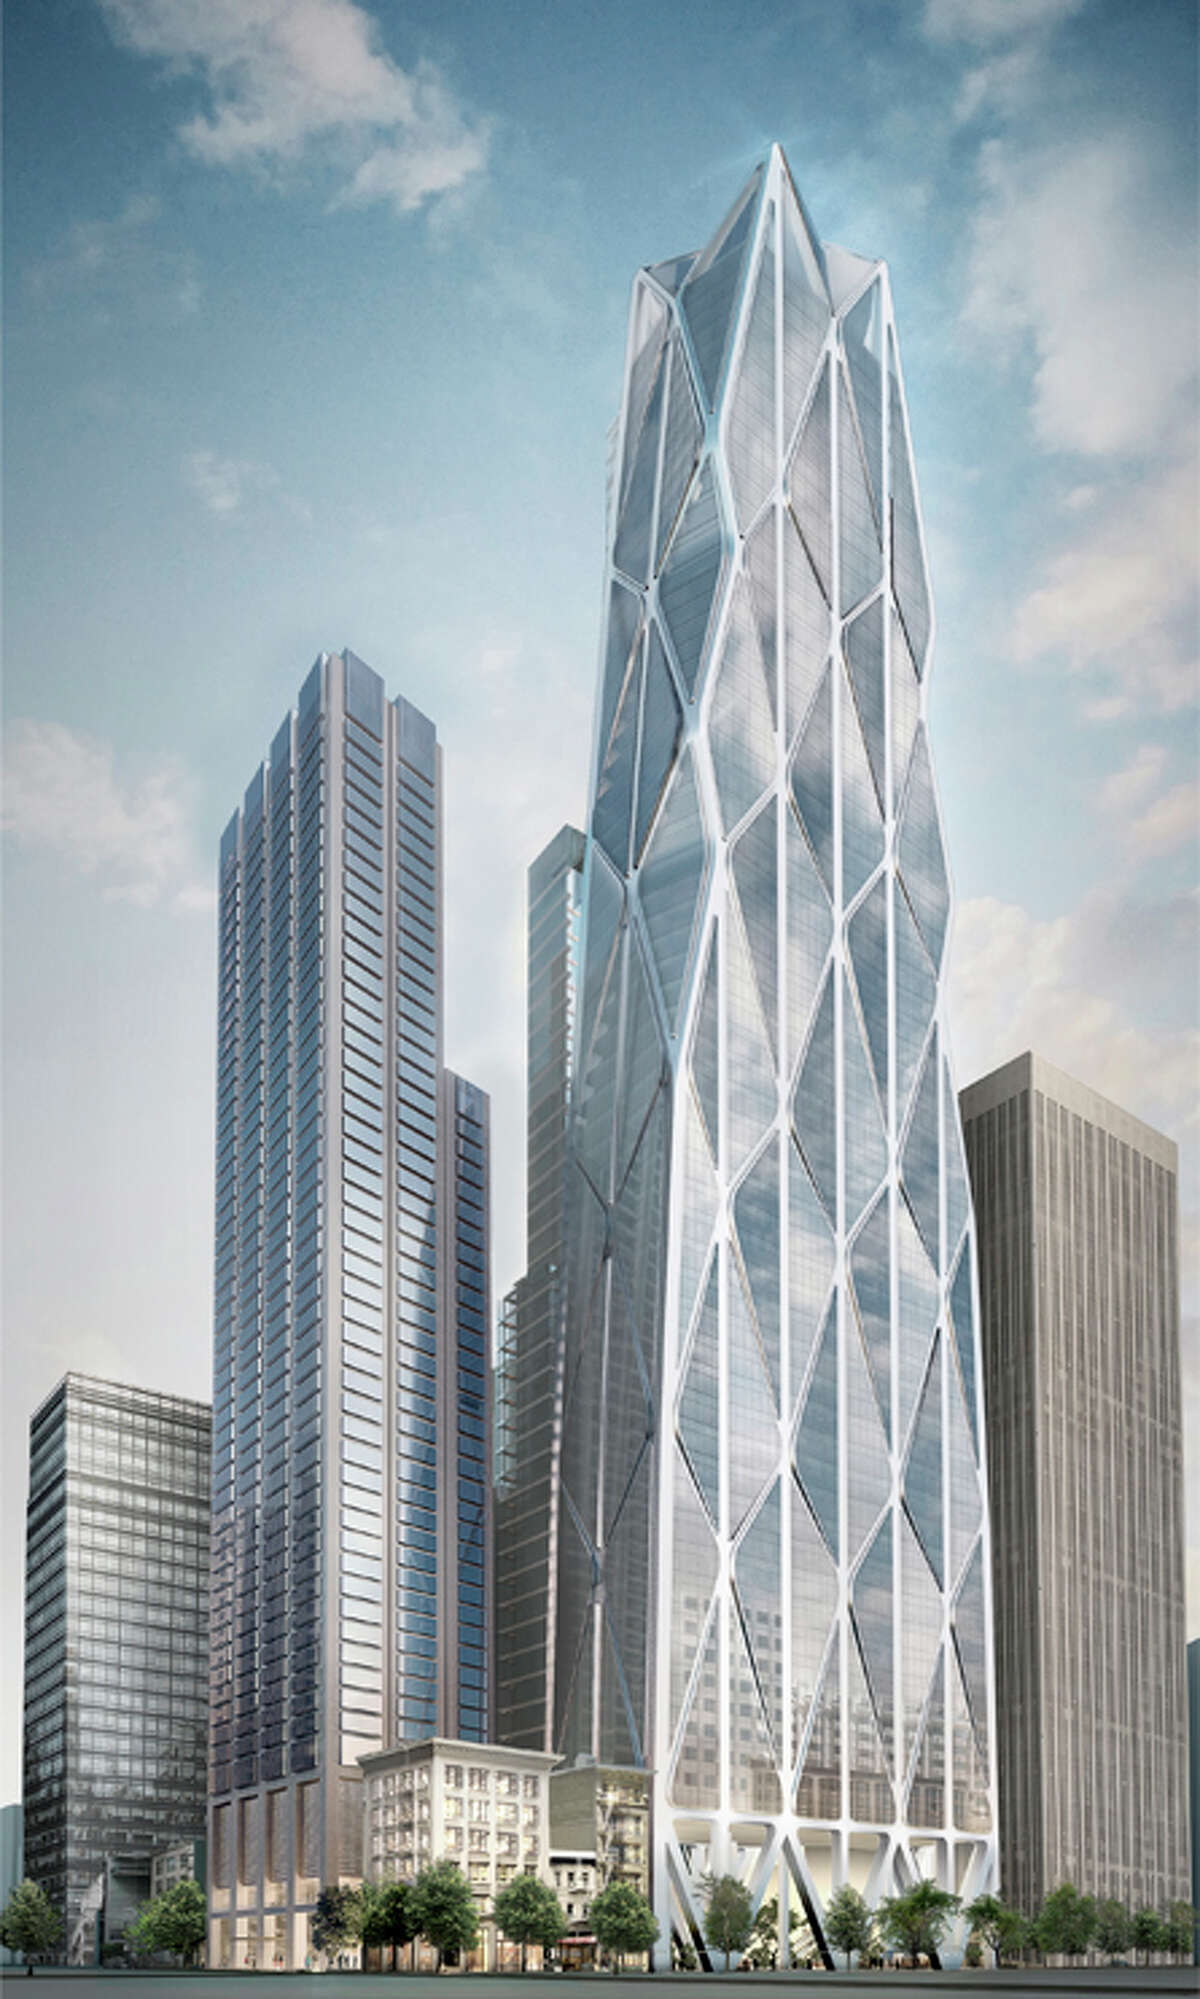 Proposed renderings of the Waldorf Astoria San Francisco luxury hotel, which will be built within a new building complex near the Transbay Transit Center.